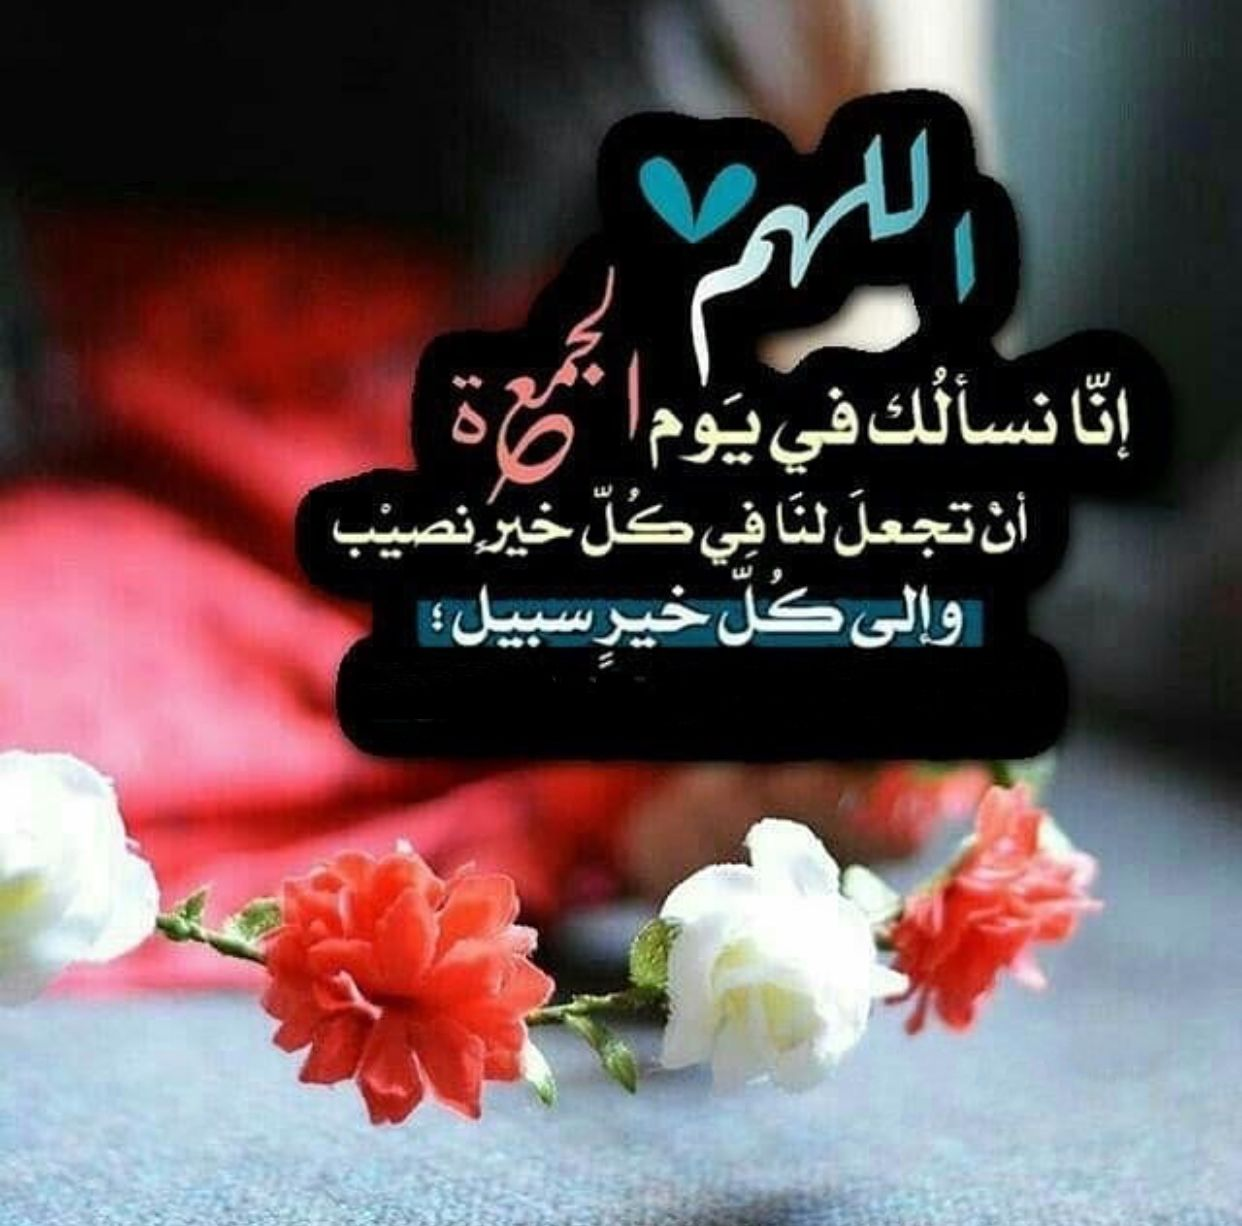 Pin By بنت محمد On جمعة طيبة Good Morning Gif Blessed Friday Good Morning Quotes